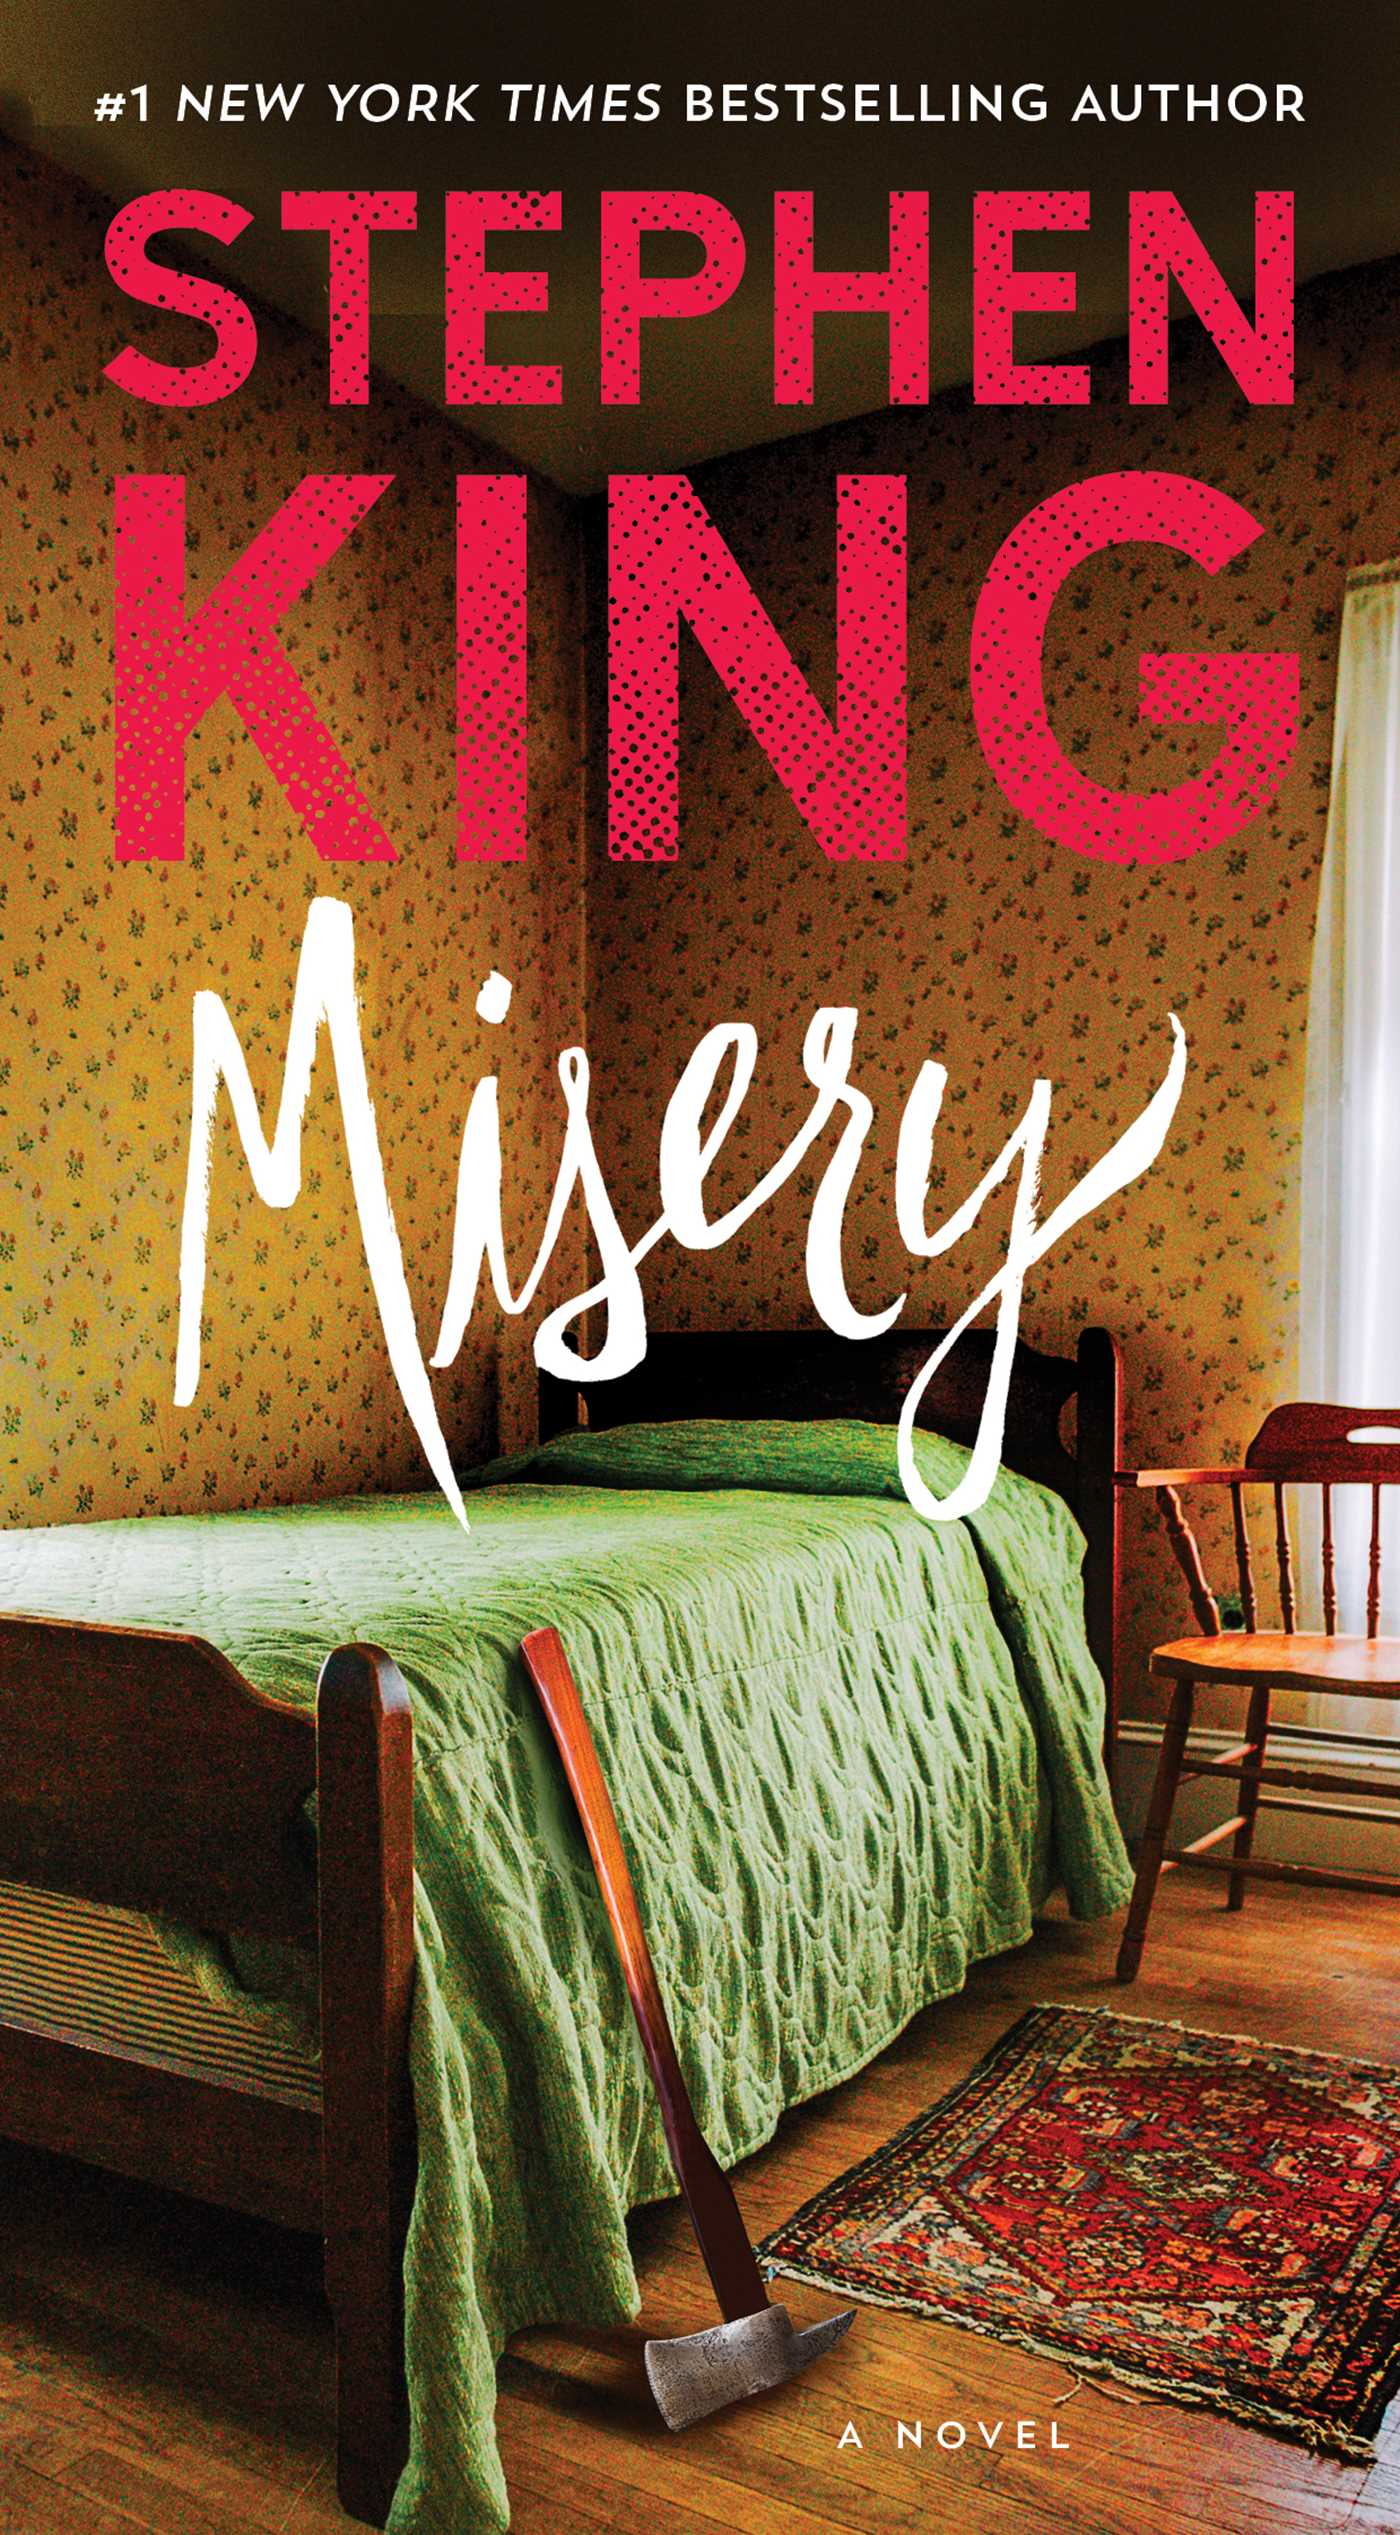 a review of misery a novel by stephen king Orders over $35 buy misery : a novel at walmartcom  see all 72 reviews 5  stars 44  on0reviews misery is the book that made me a stephen king fan.